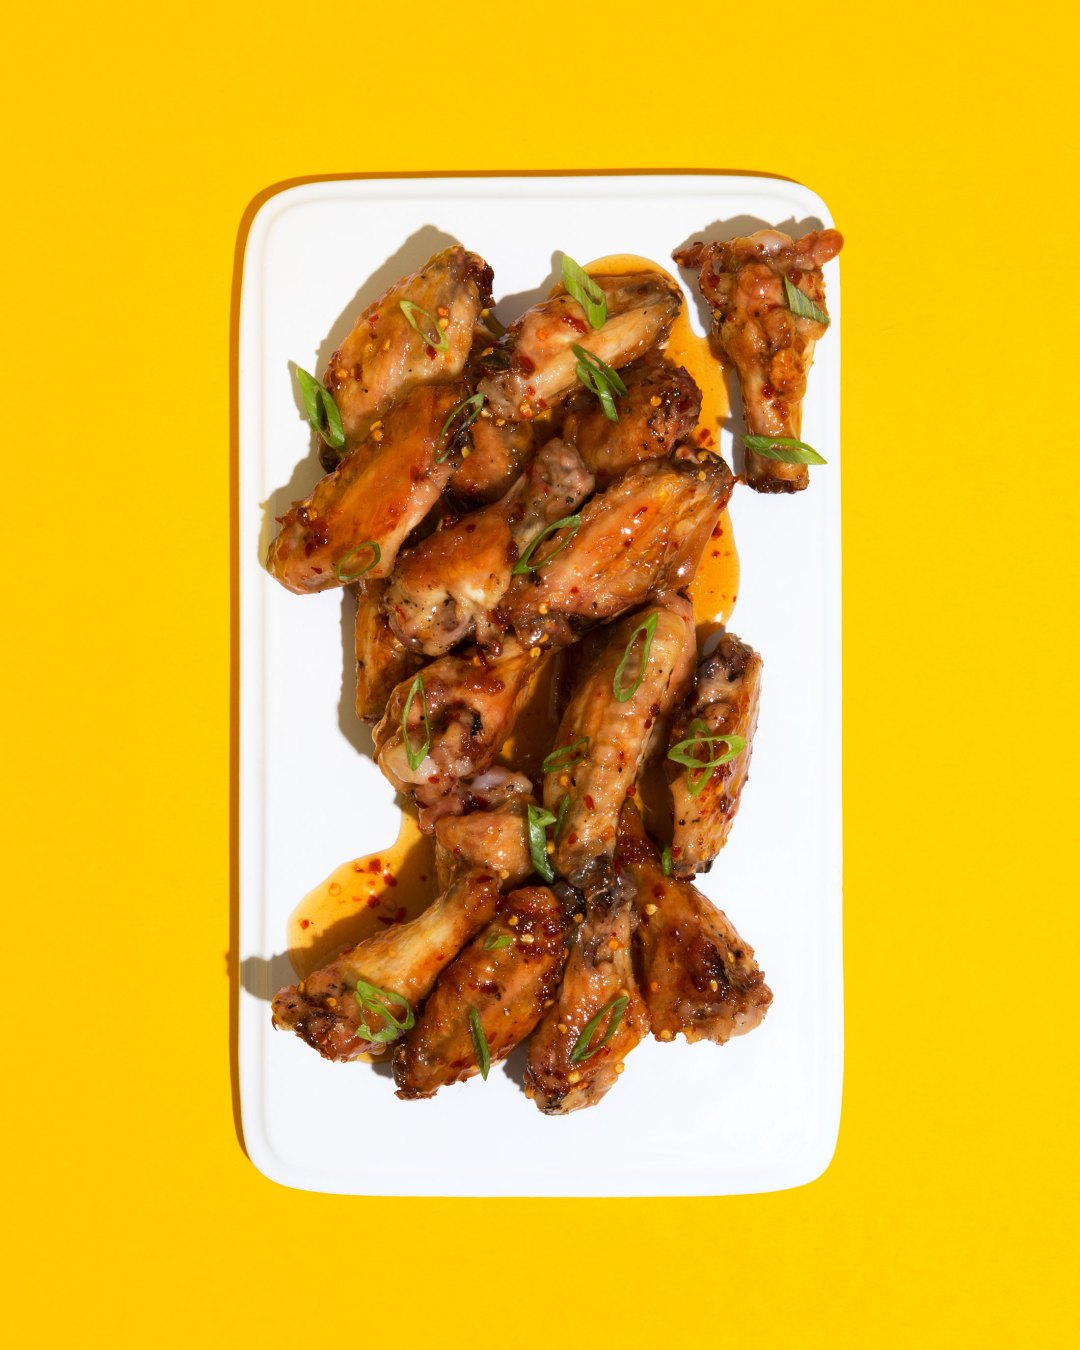 Chili Citrus Mezcal Wings